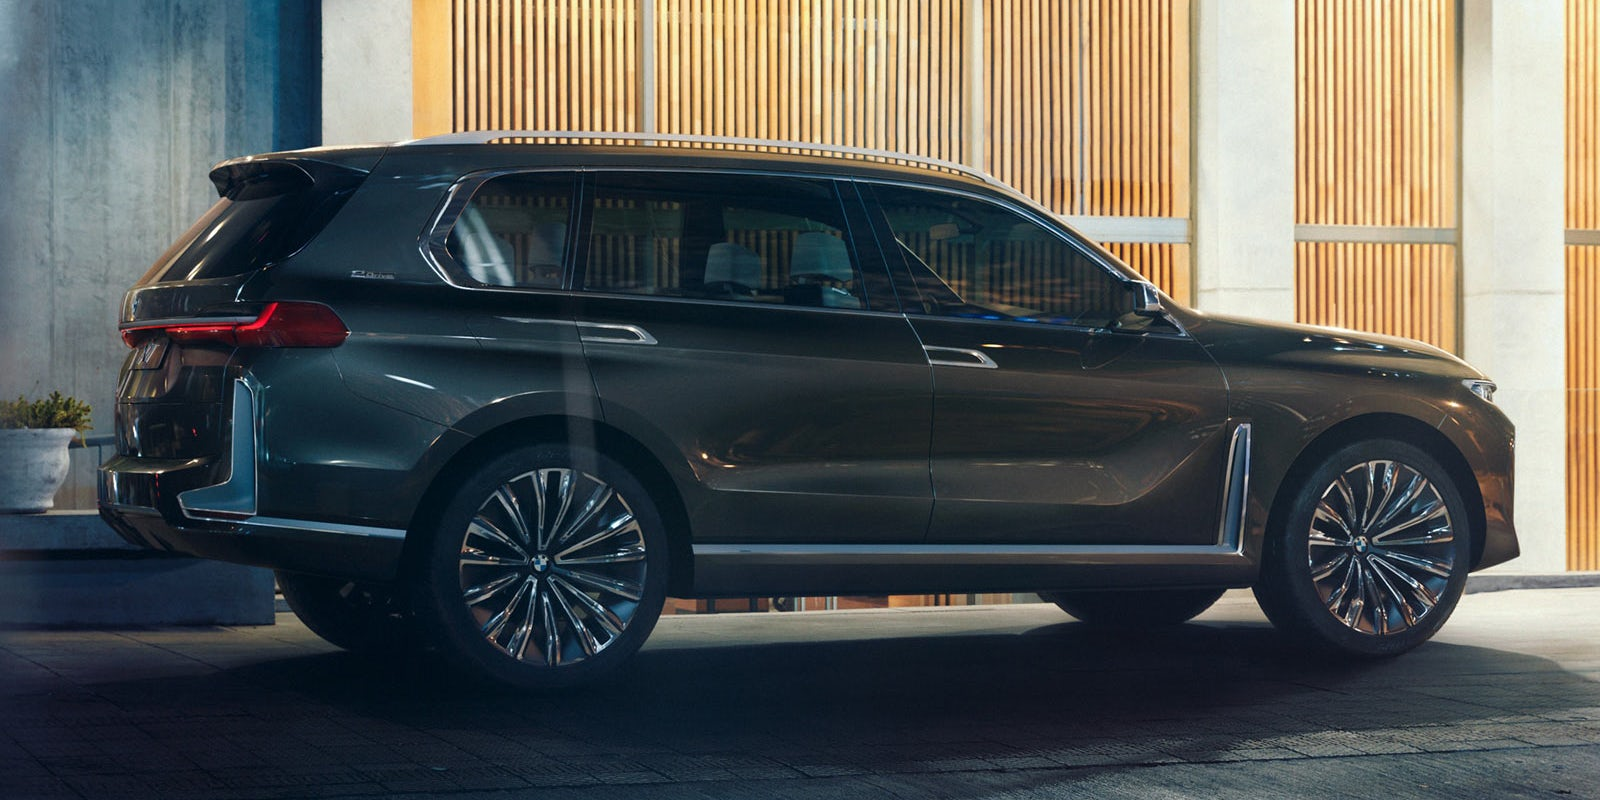 2018 BMW X7 DImensions and SUV Capability